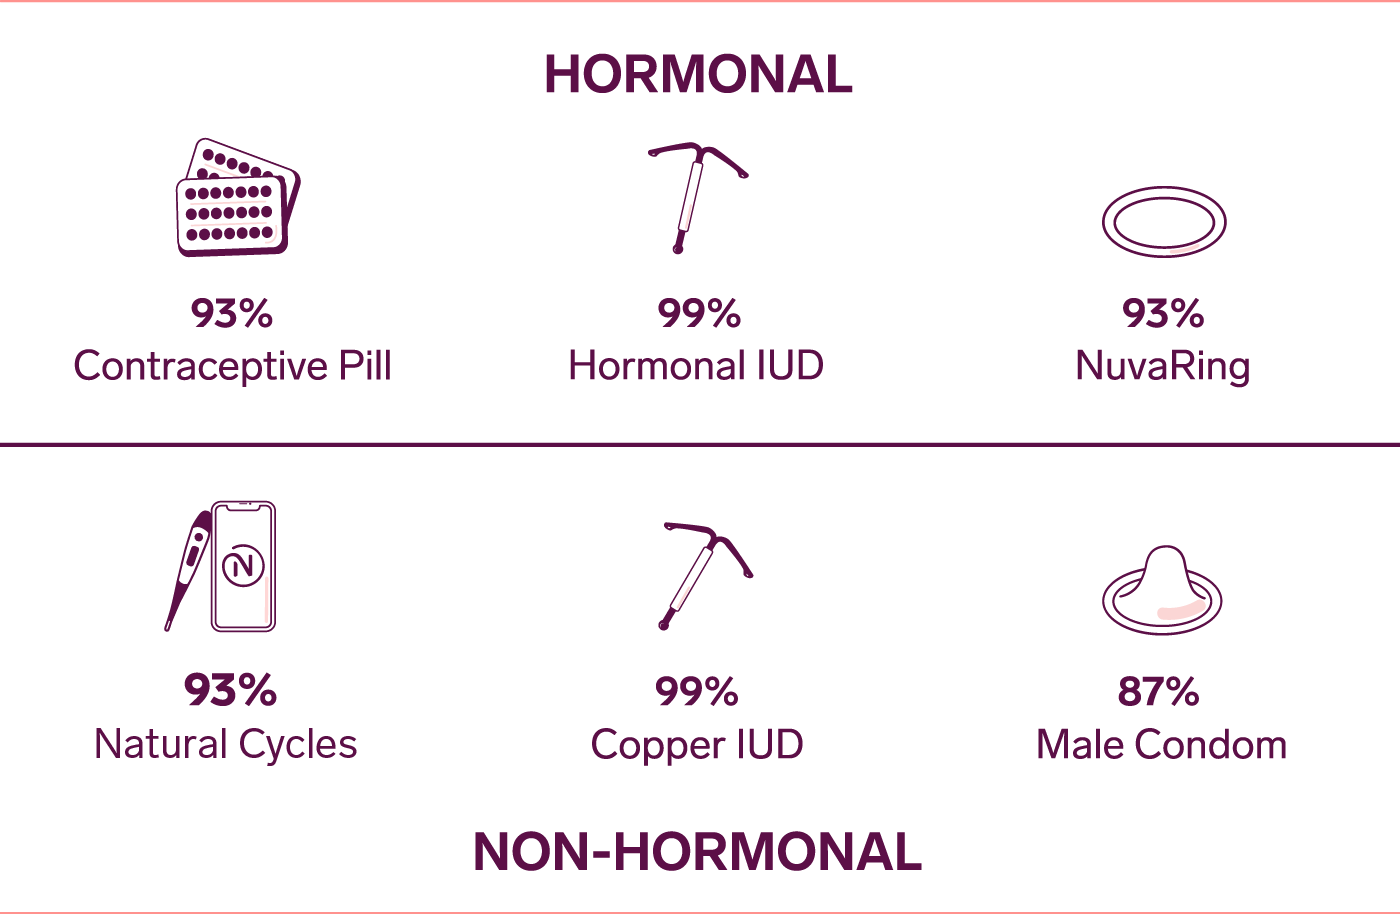 Table showing hormonal and non-hormonal birth control and their typical use effectiveness